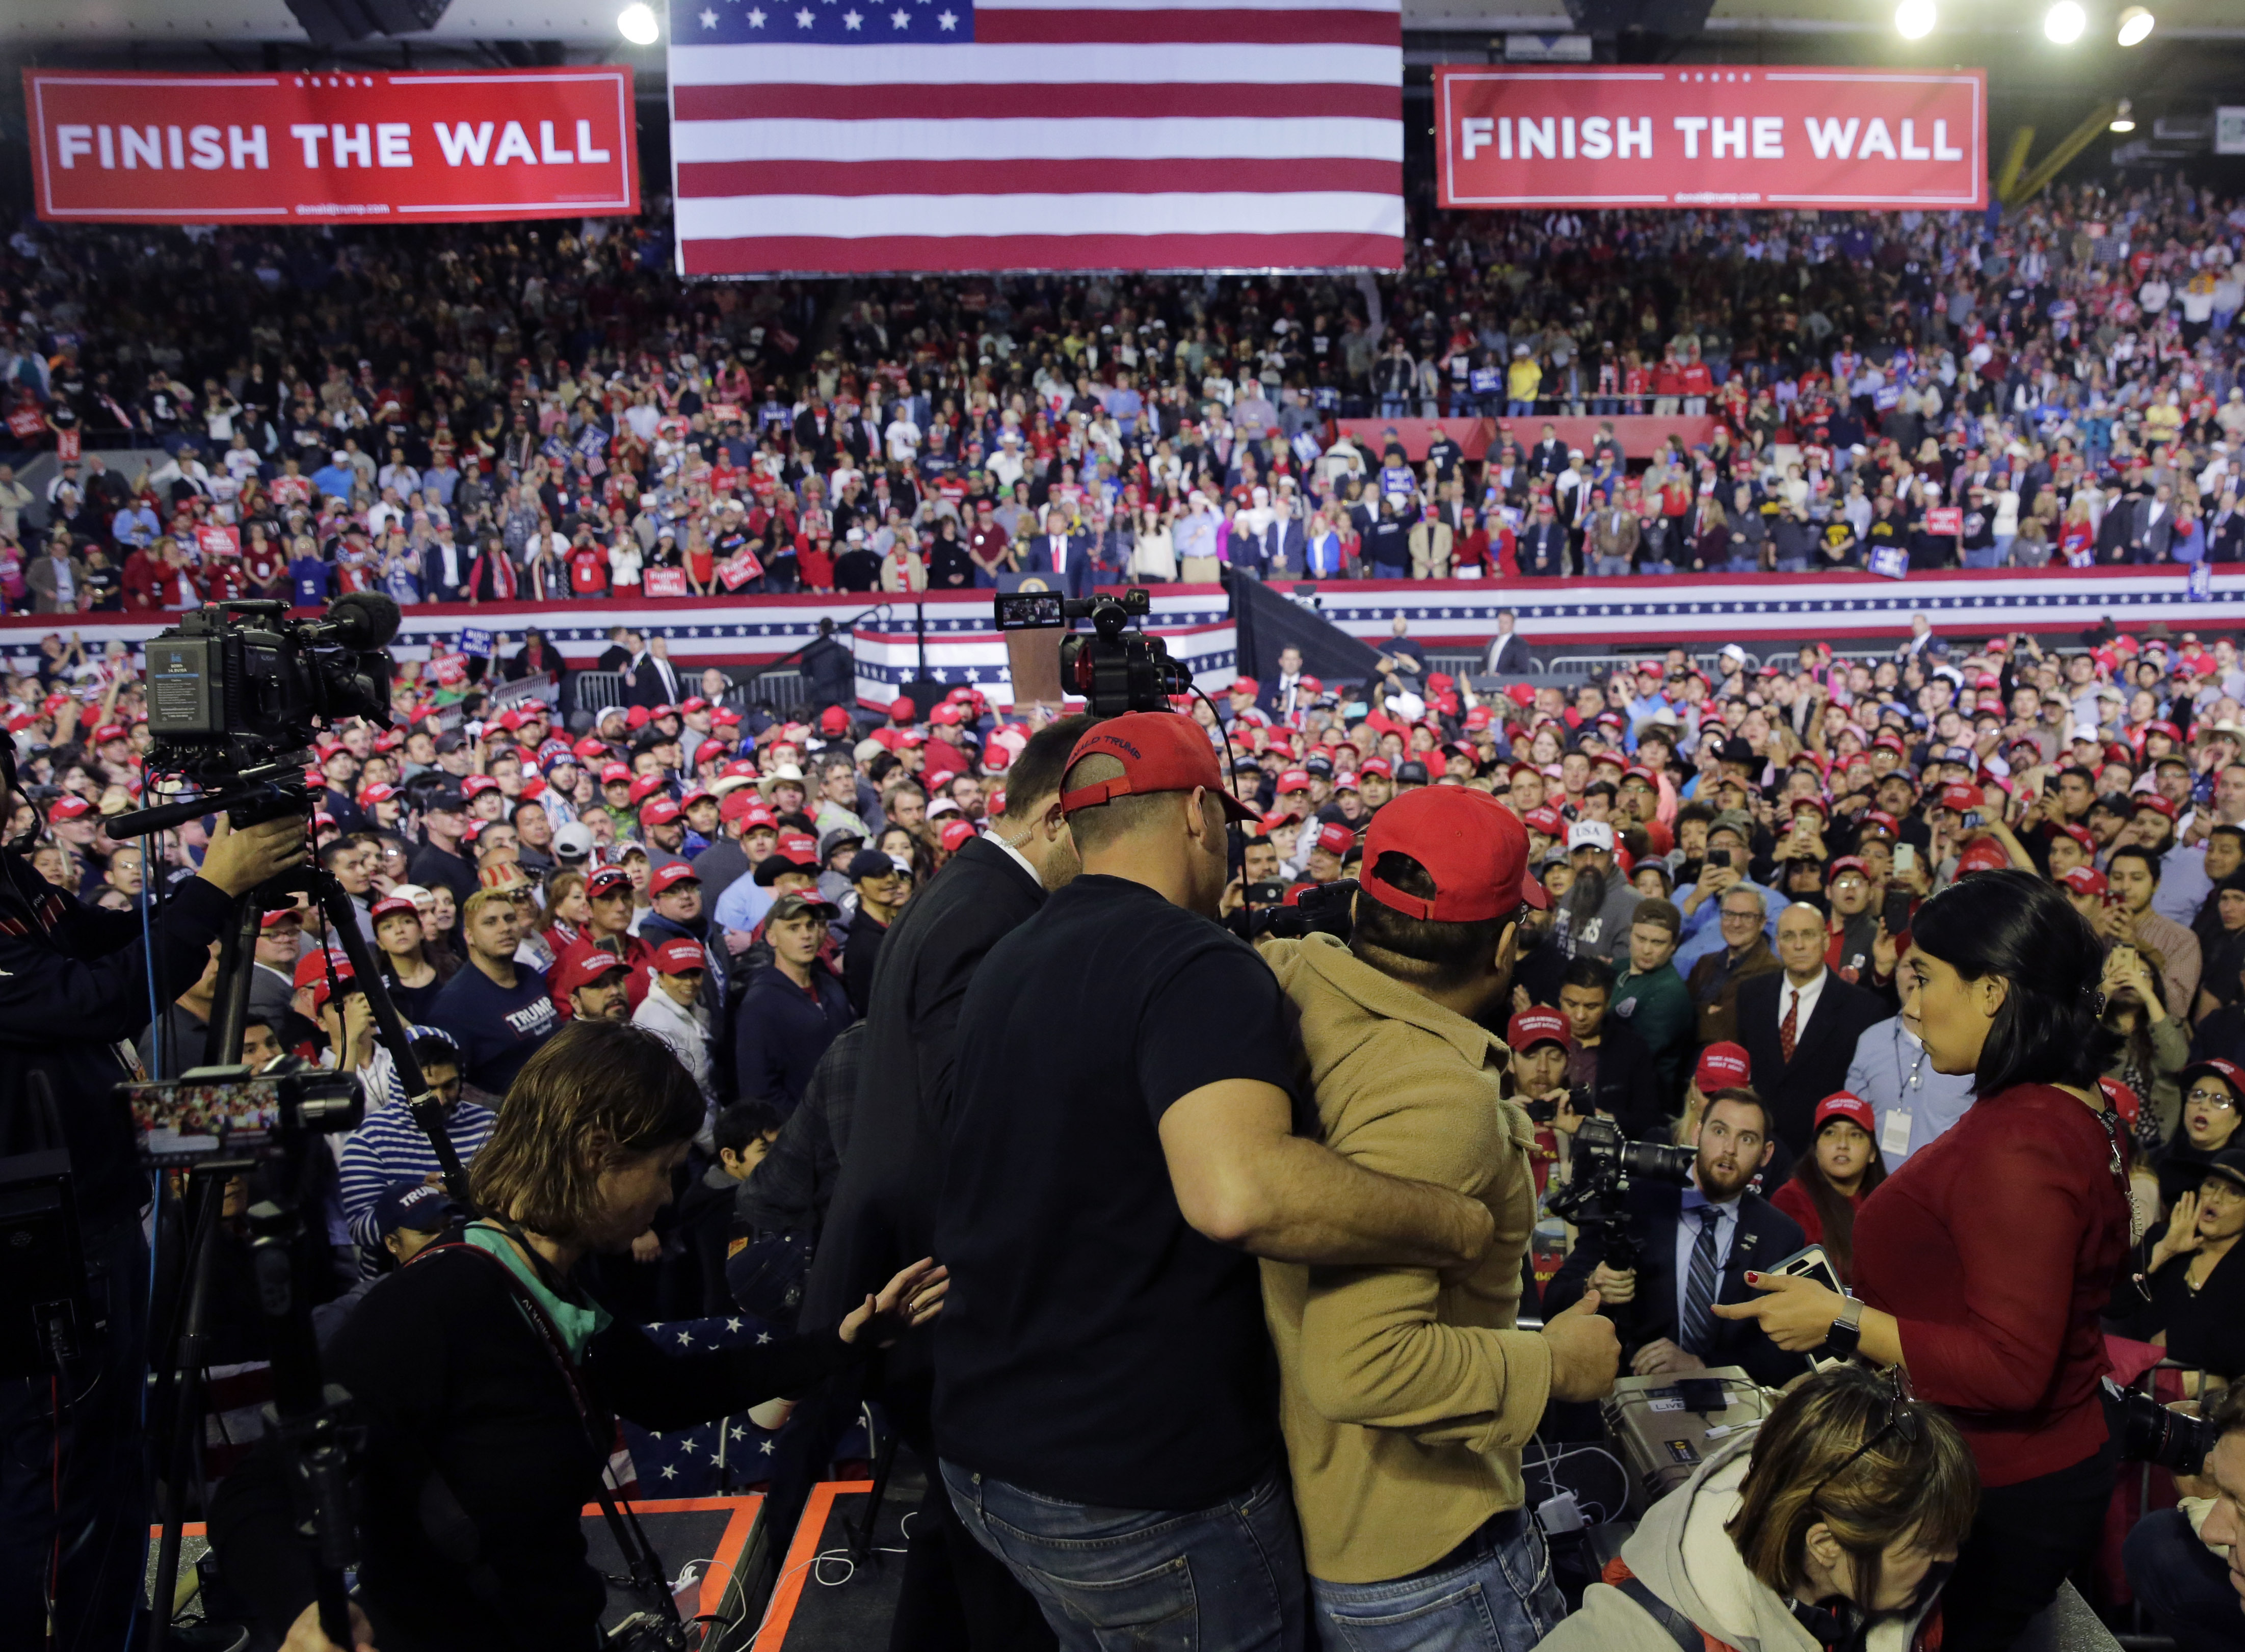 BBC cameraman 'violently pushed and shoved' during Trump rally